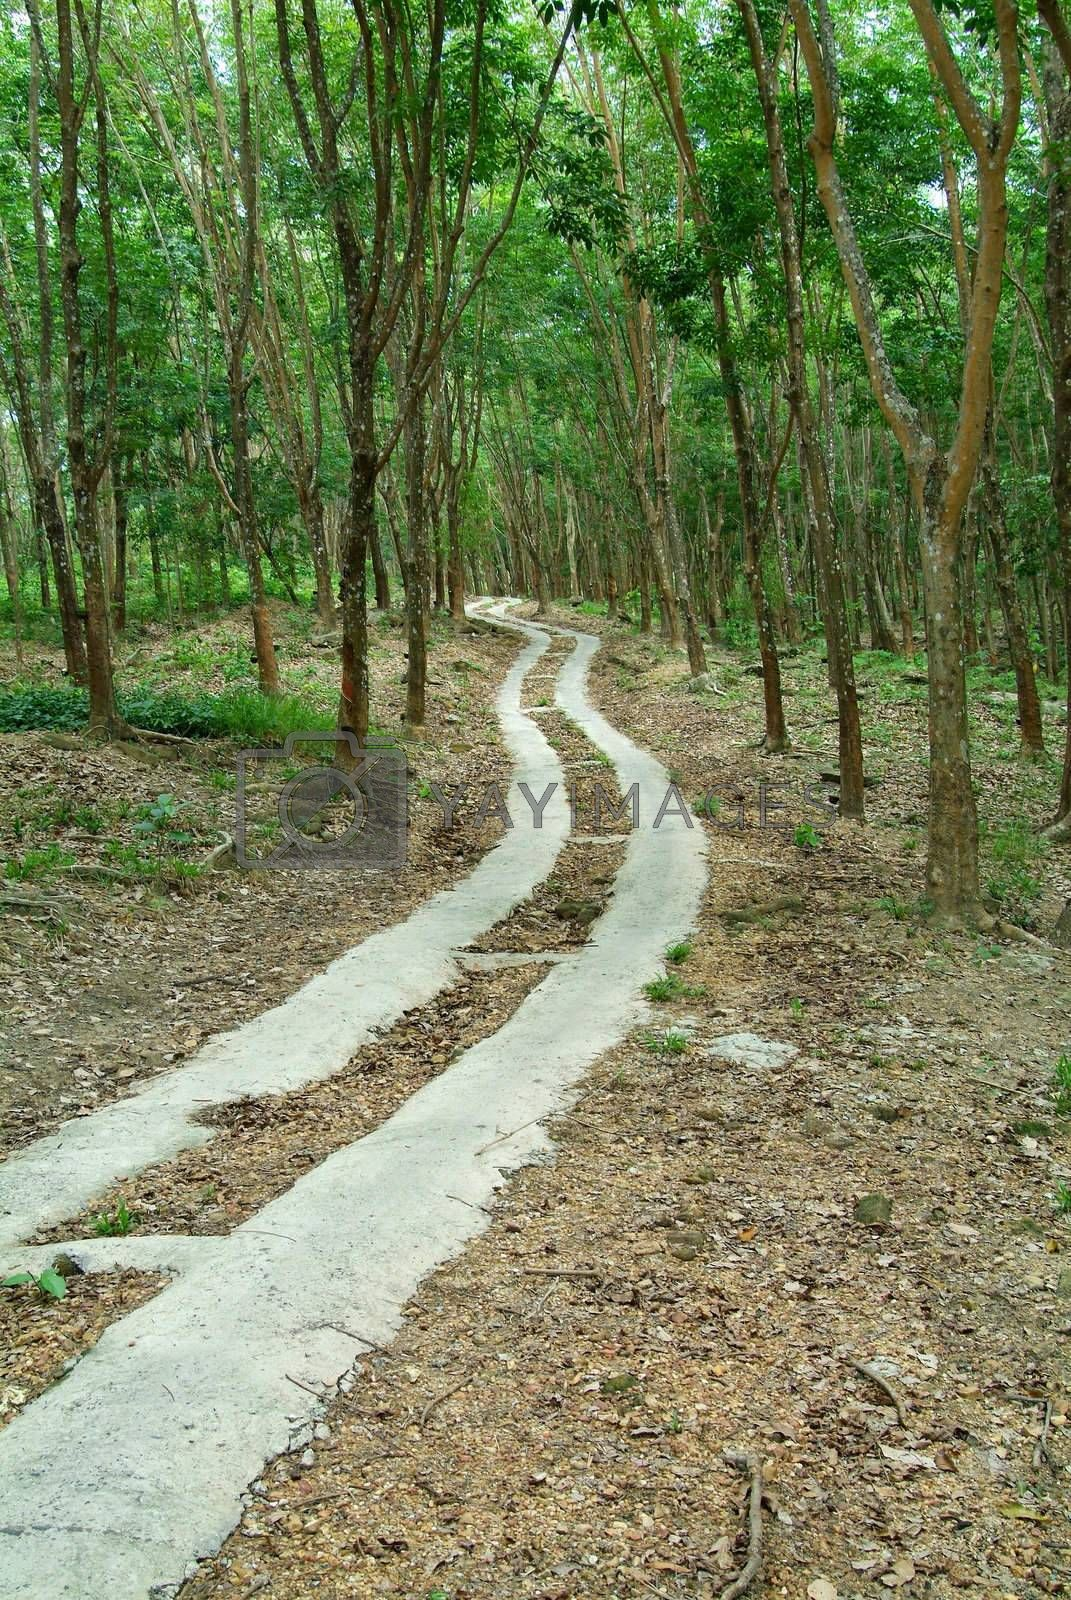 Road through a rubber plantation by epixx